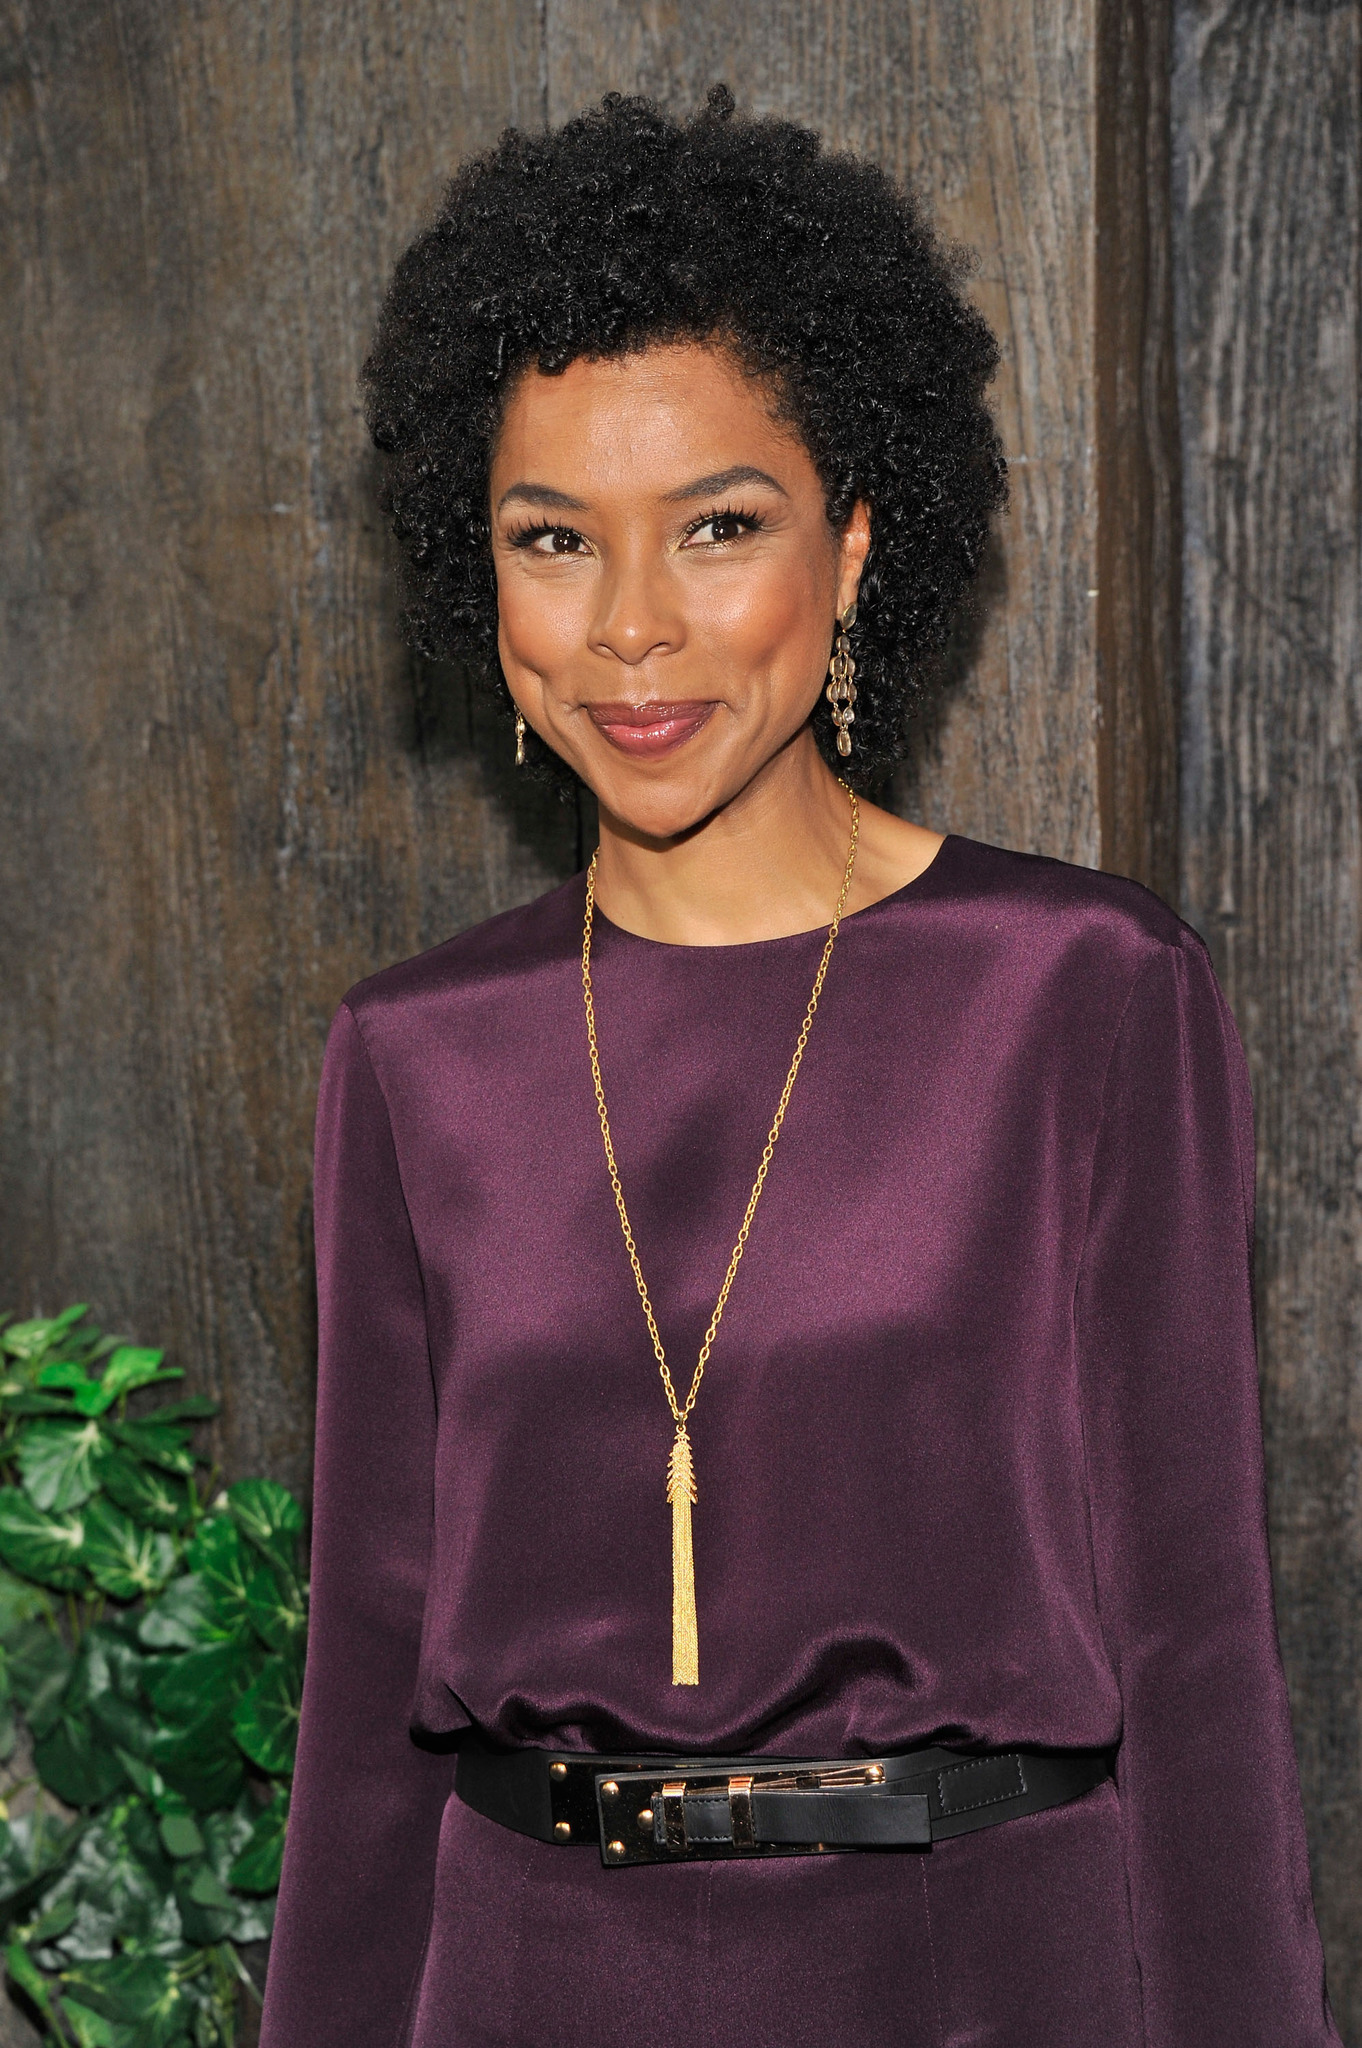 Sophie Okonedo at an event for After Earth (2013)